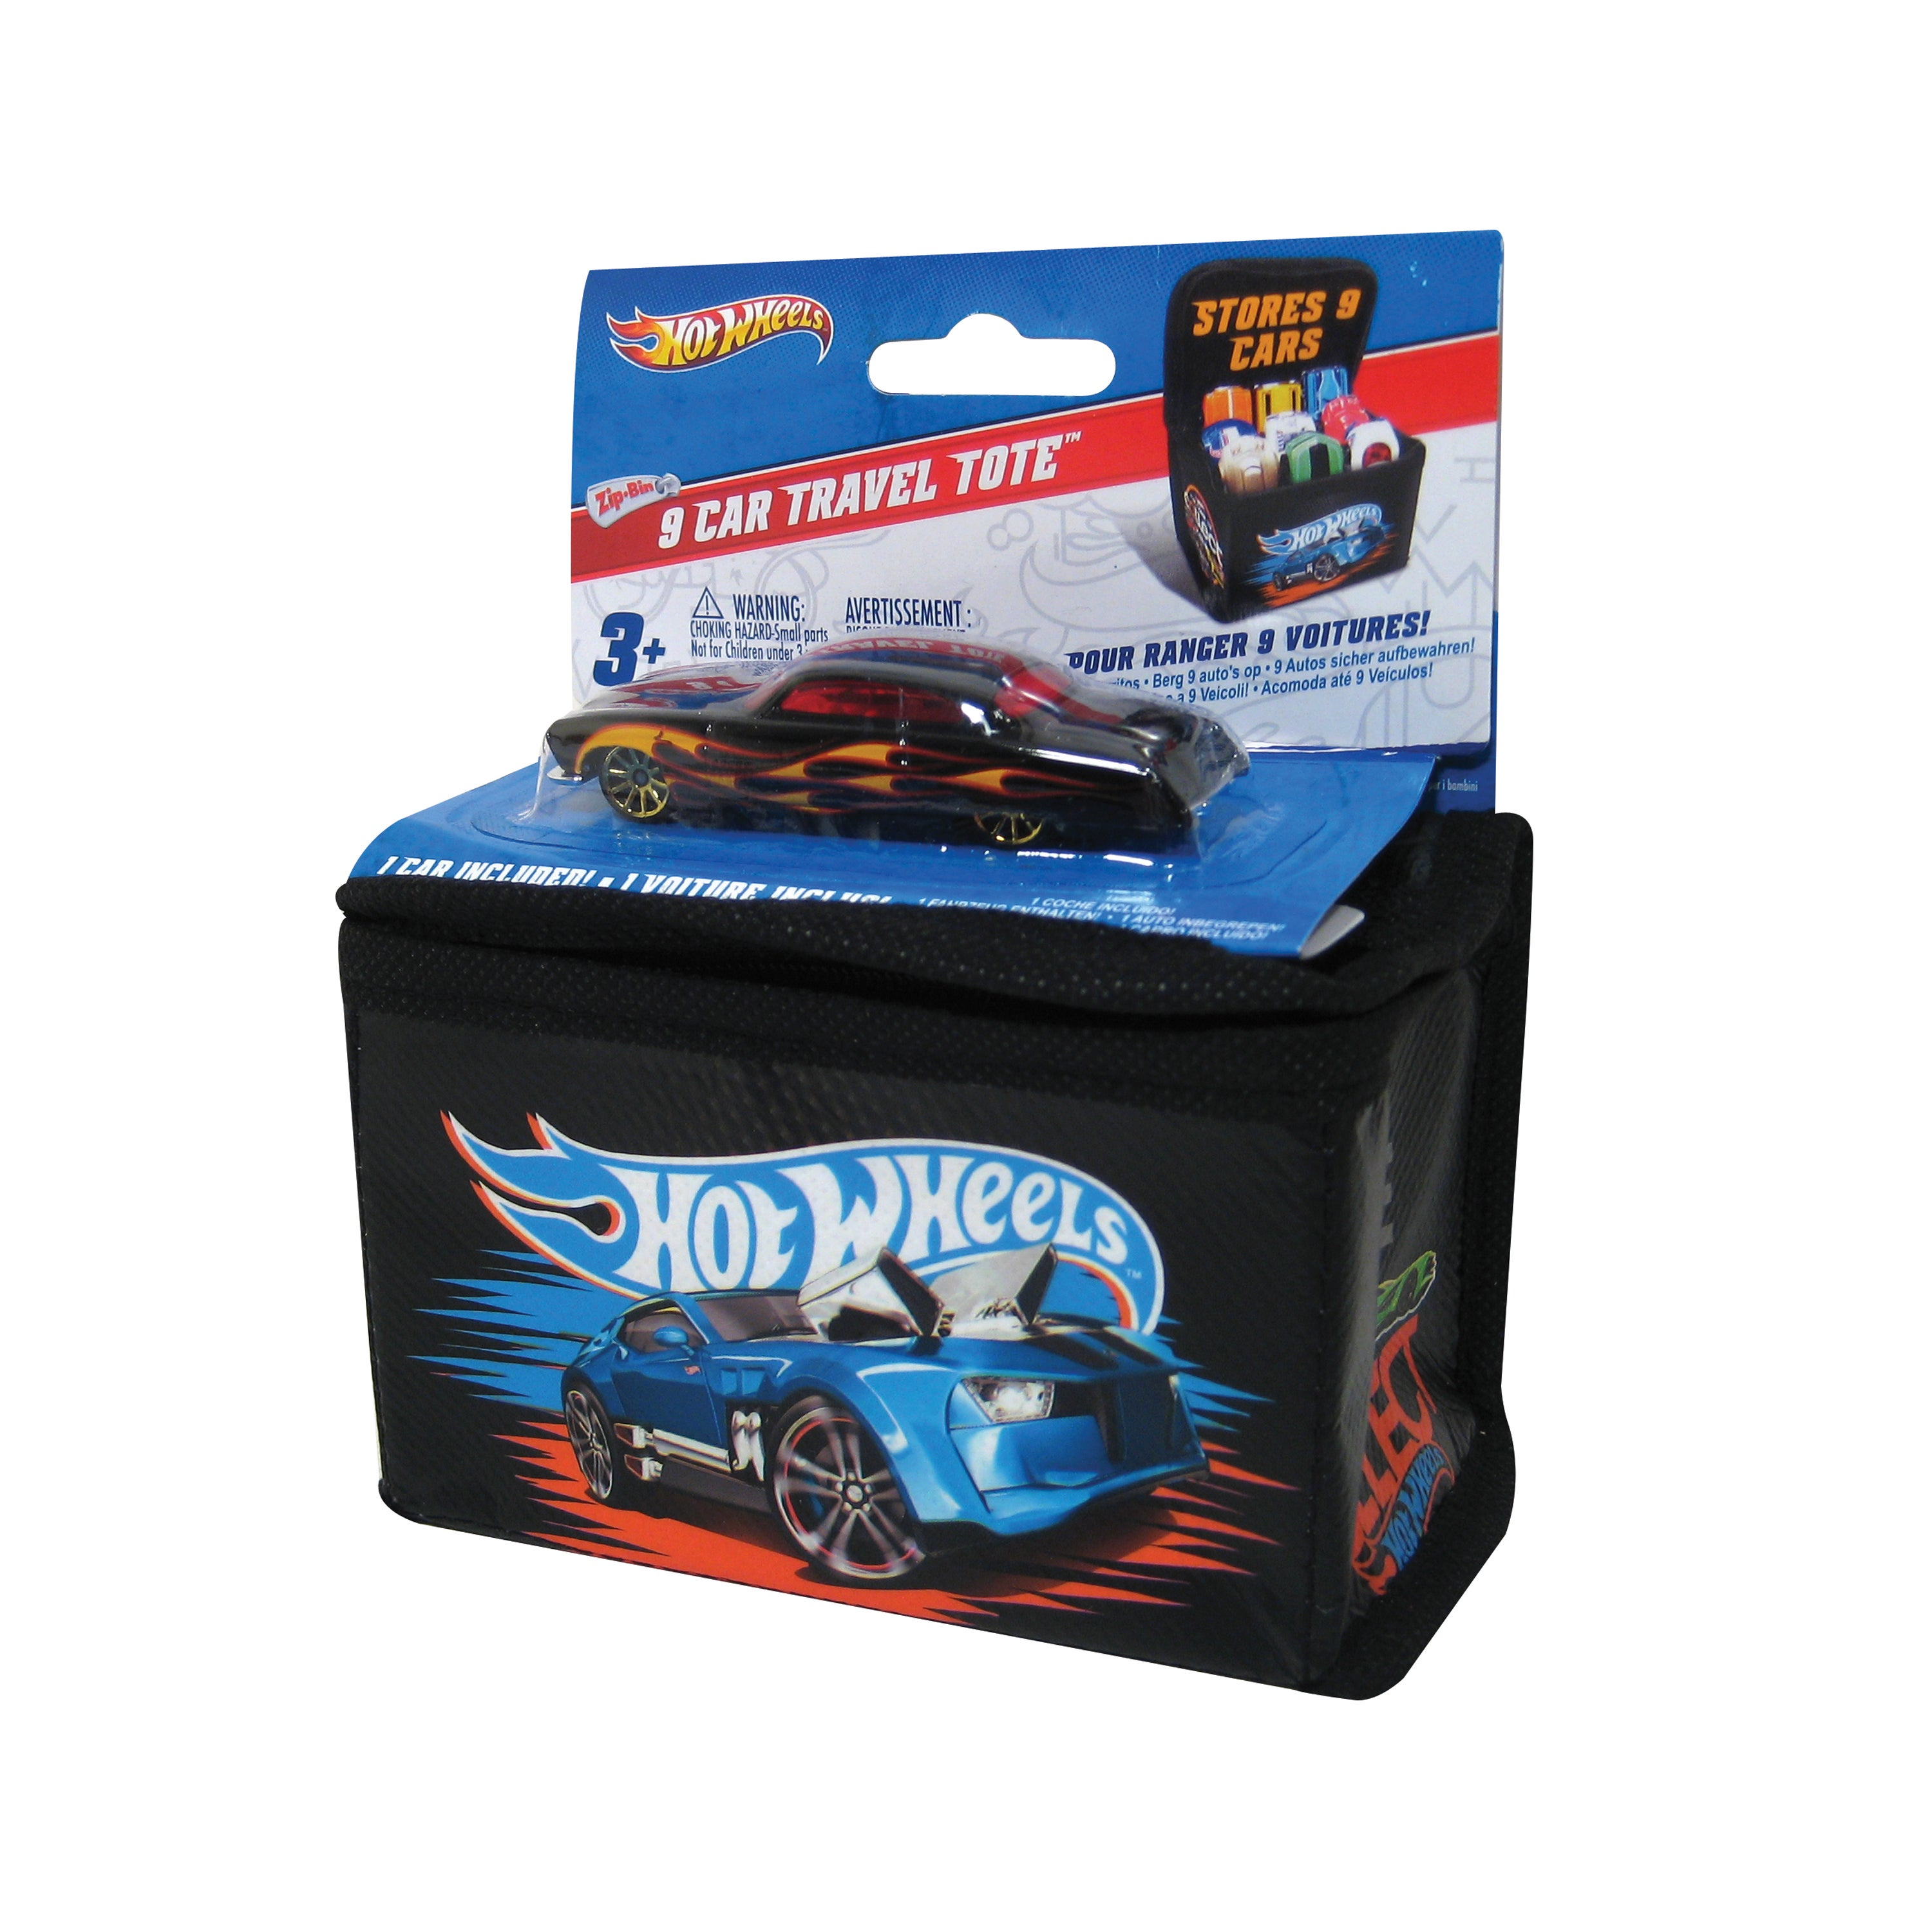 Neat-Oh Hot Wheels 9 Car Travel Tote with car (G878119003...